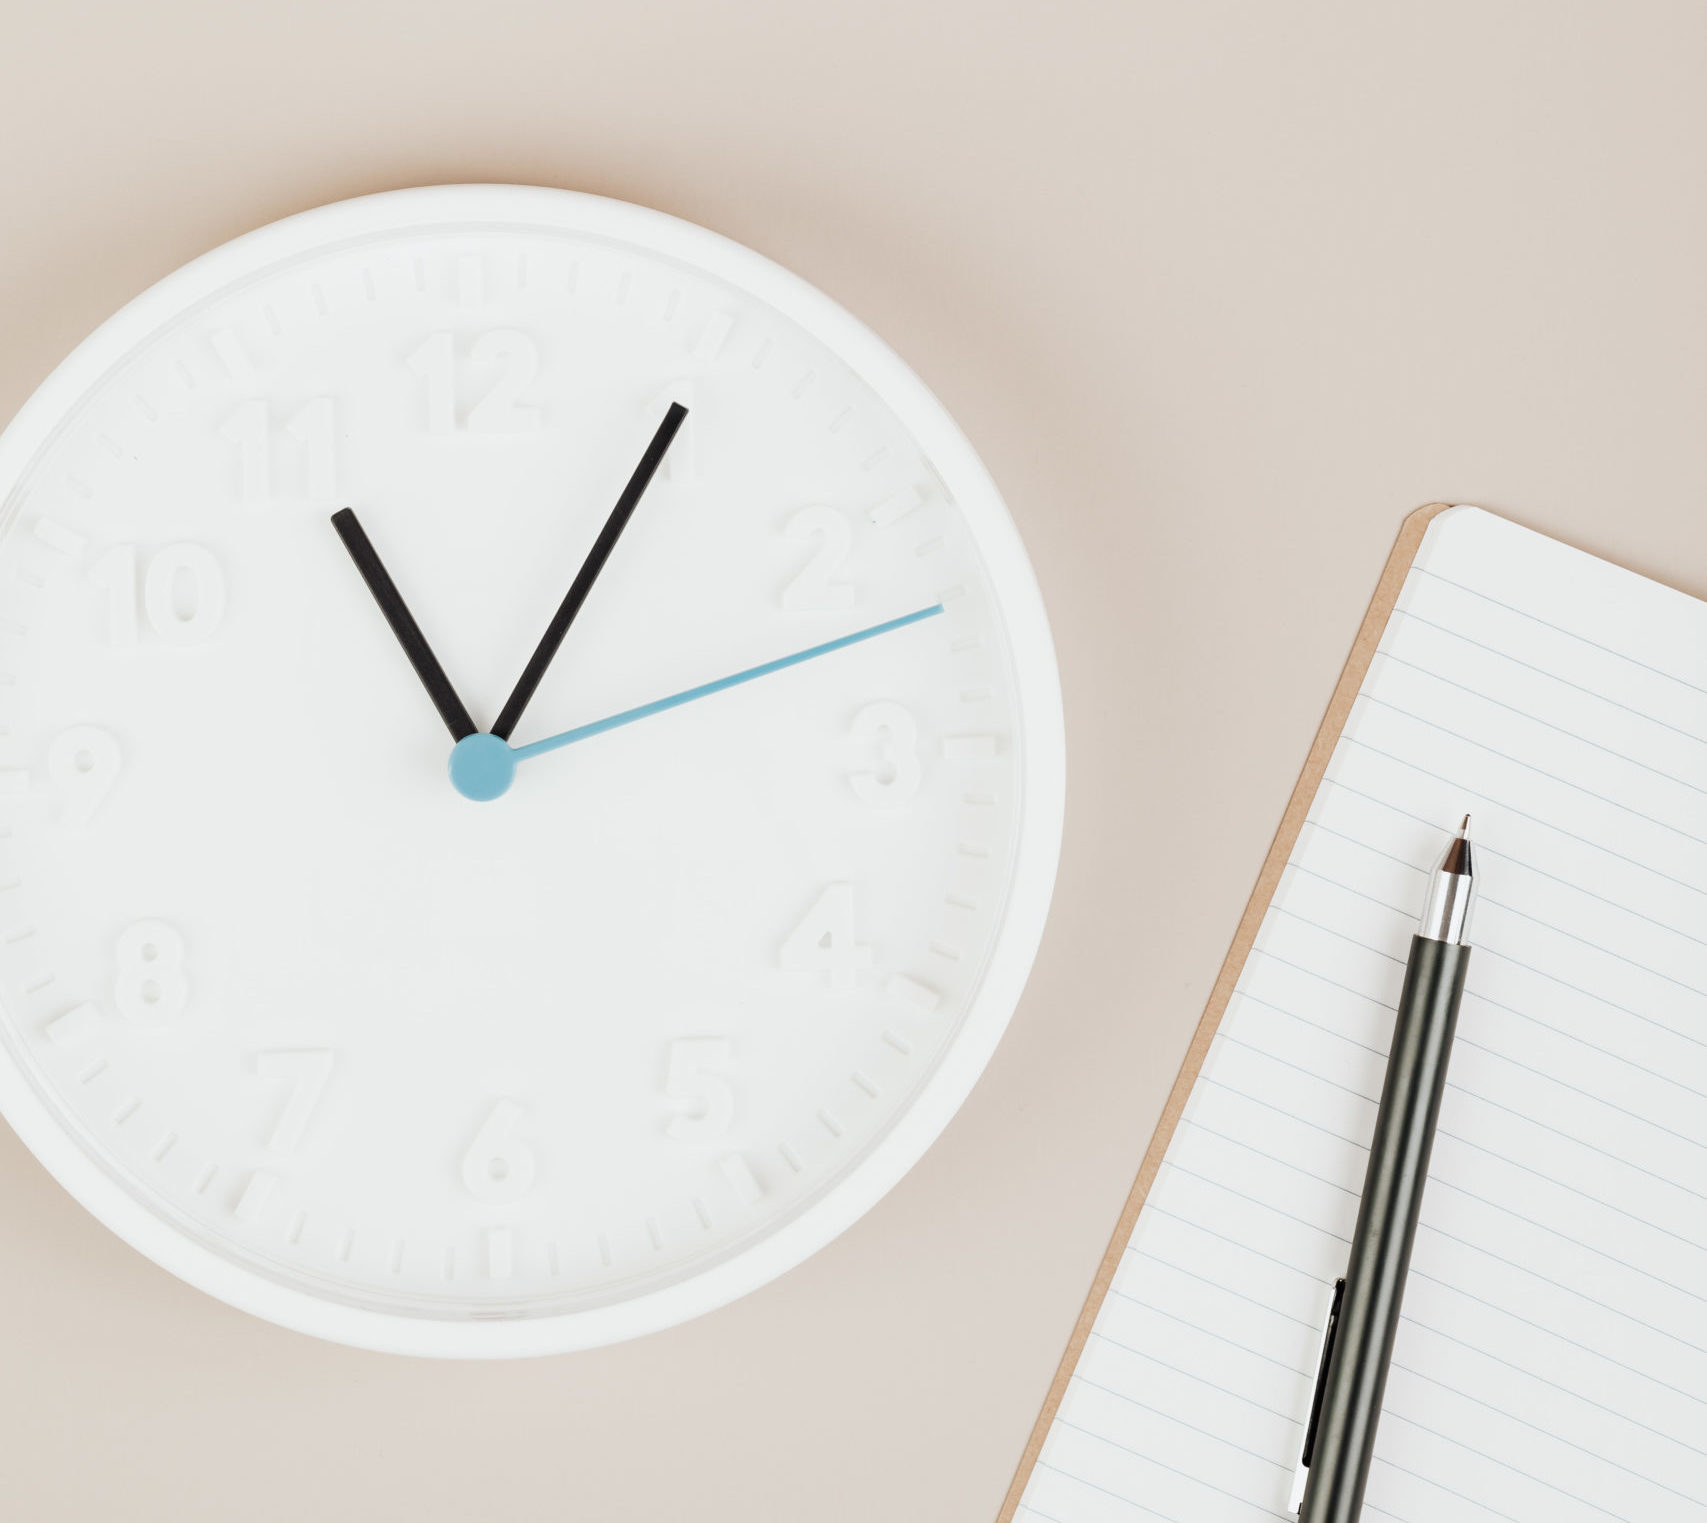 Picture of a clock beside a notepad and pen